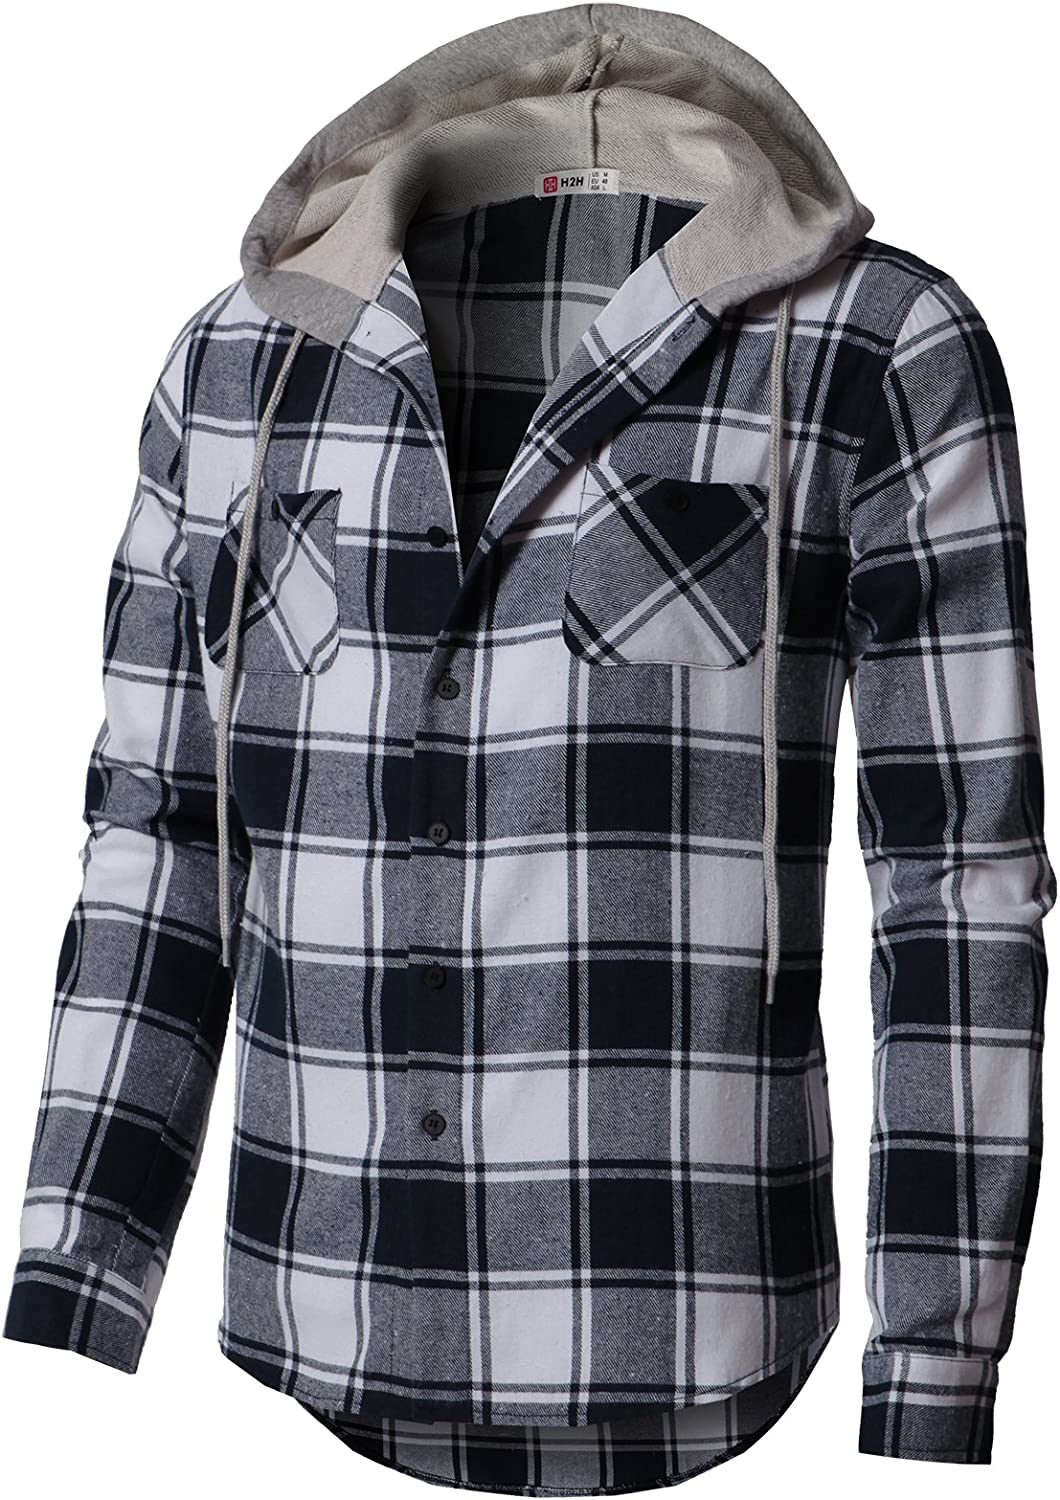 H2H Mens Casual Hoodie Jackets Lightweight Long & Short Sleeve with Pockets